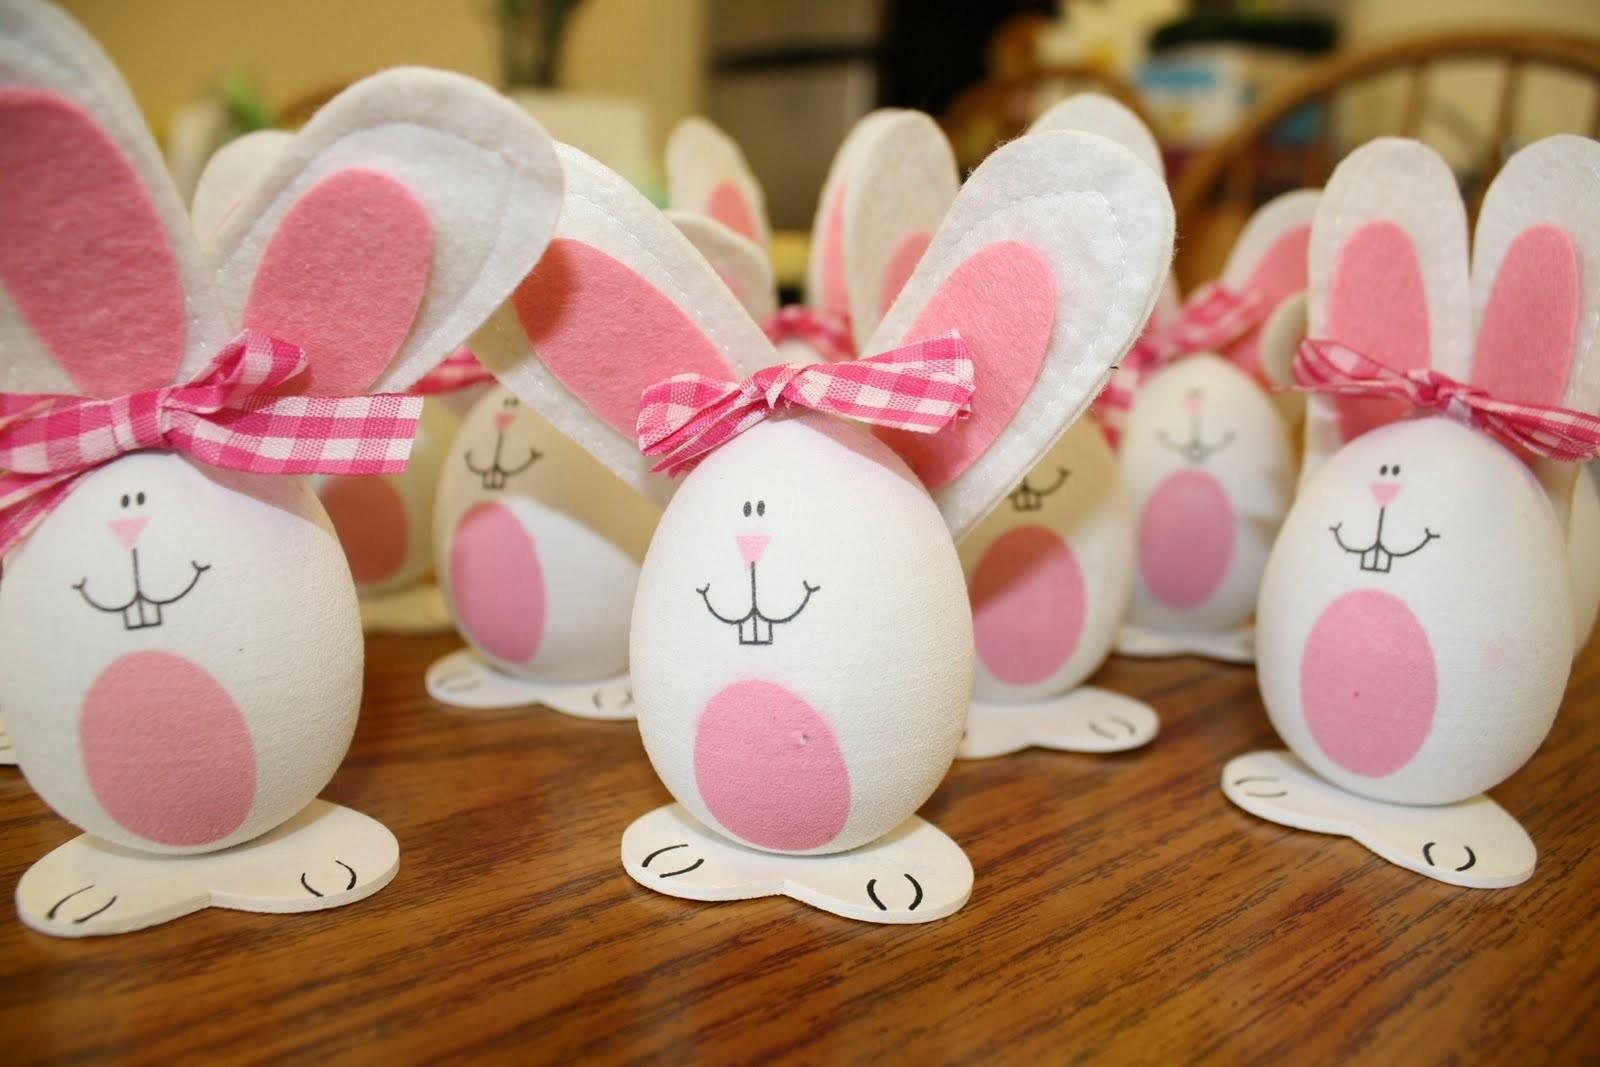 Serenity Assisted Living Spring Easter Crafts Galore